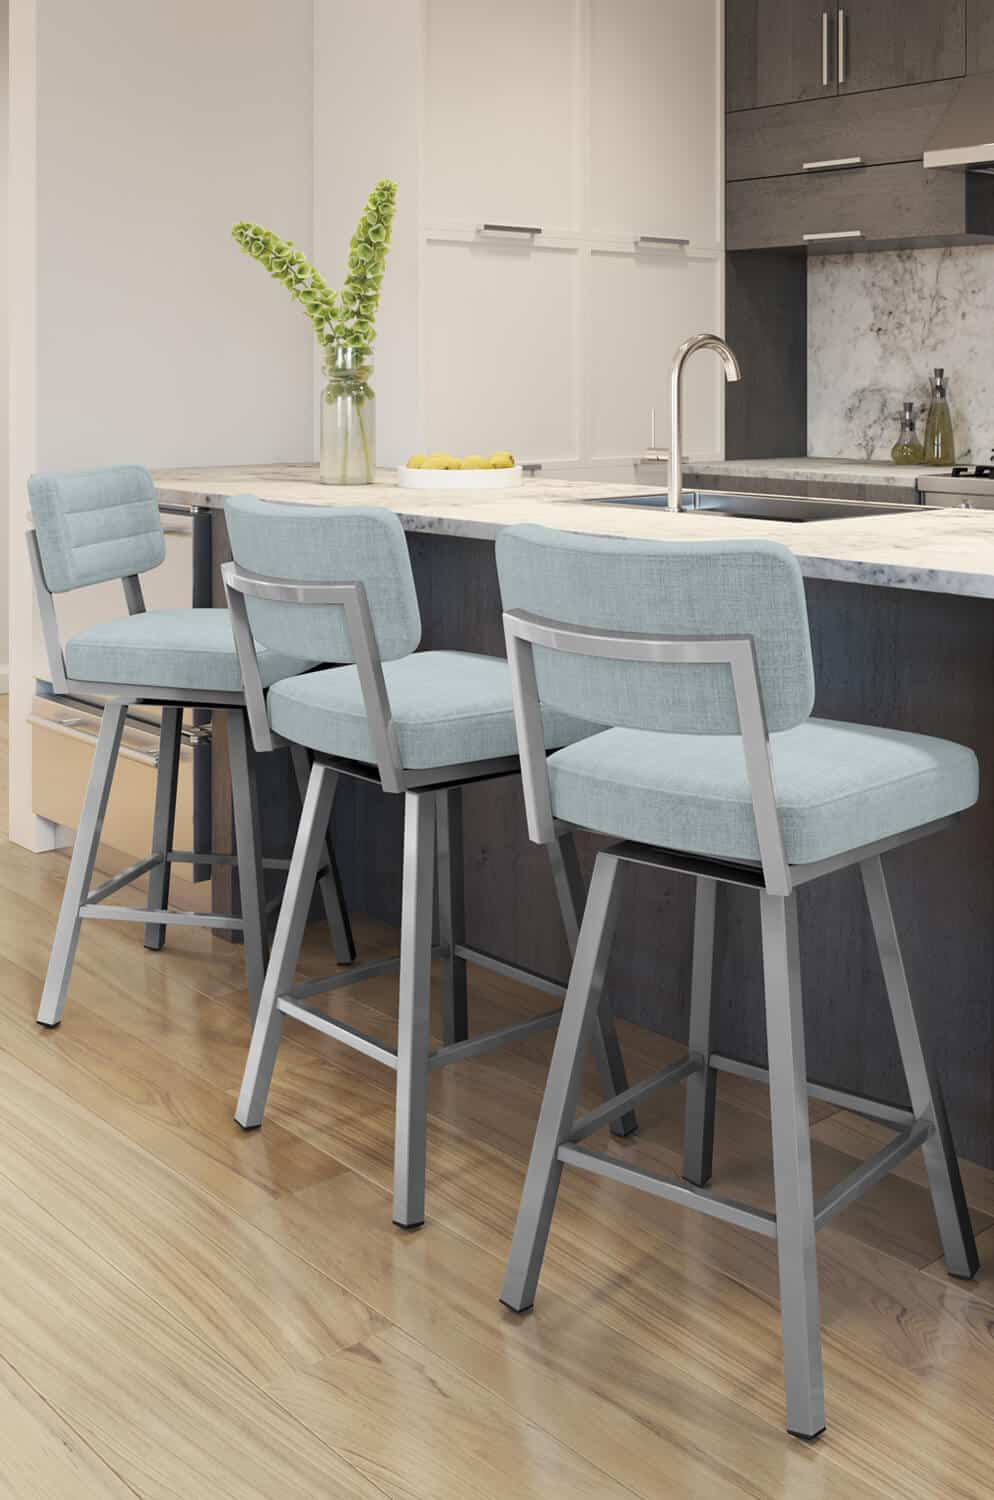 kitchen with blue stools